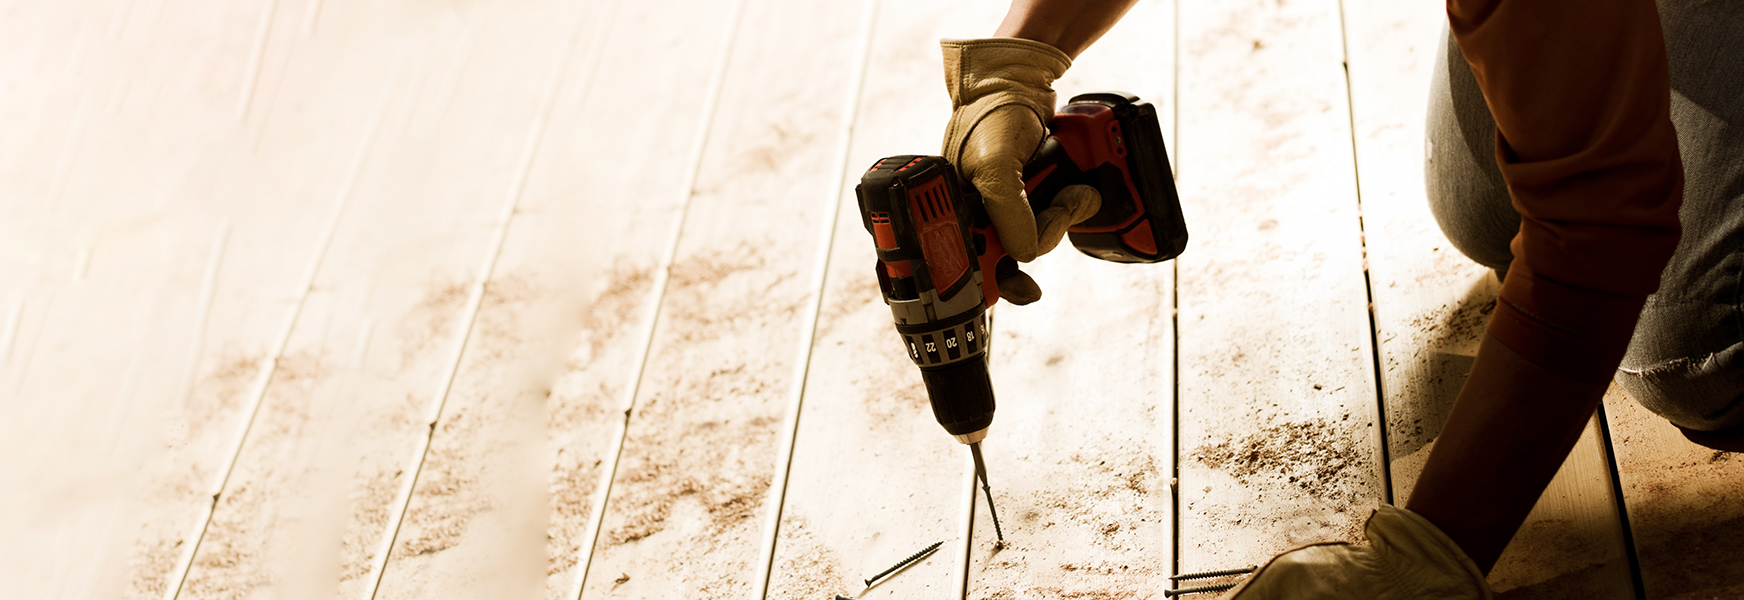 Worker using power drill